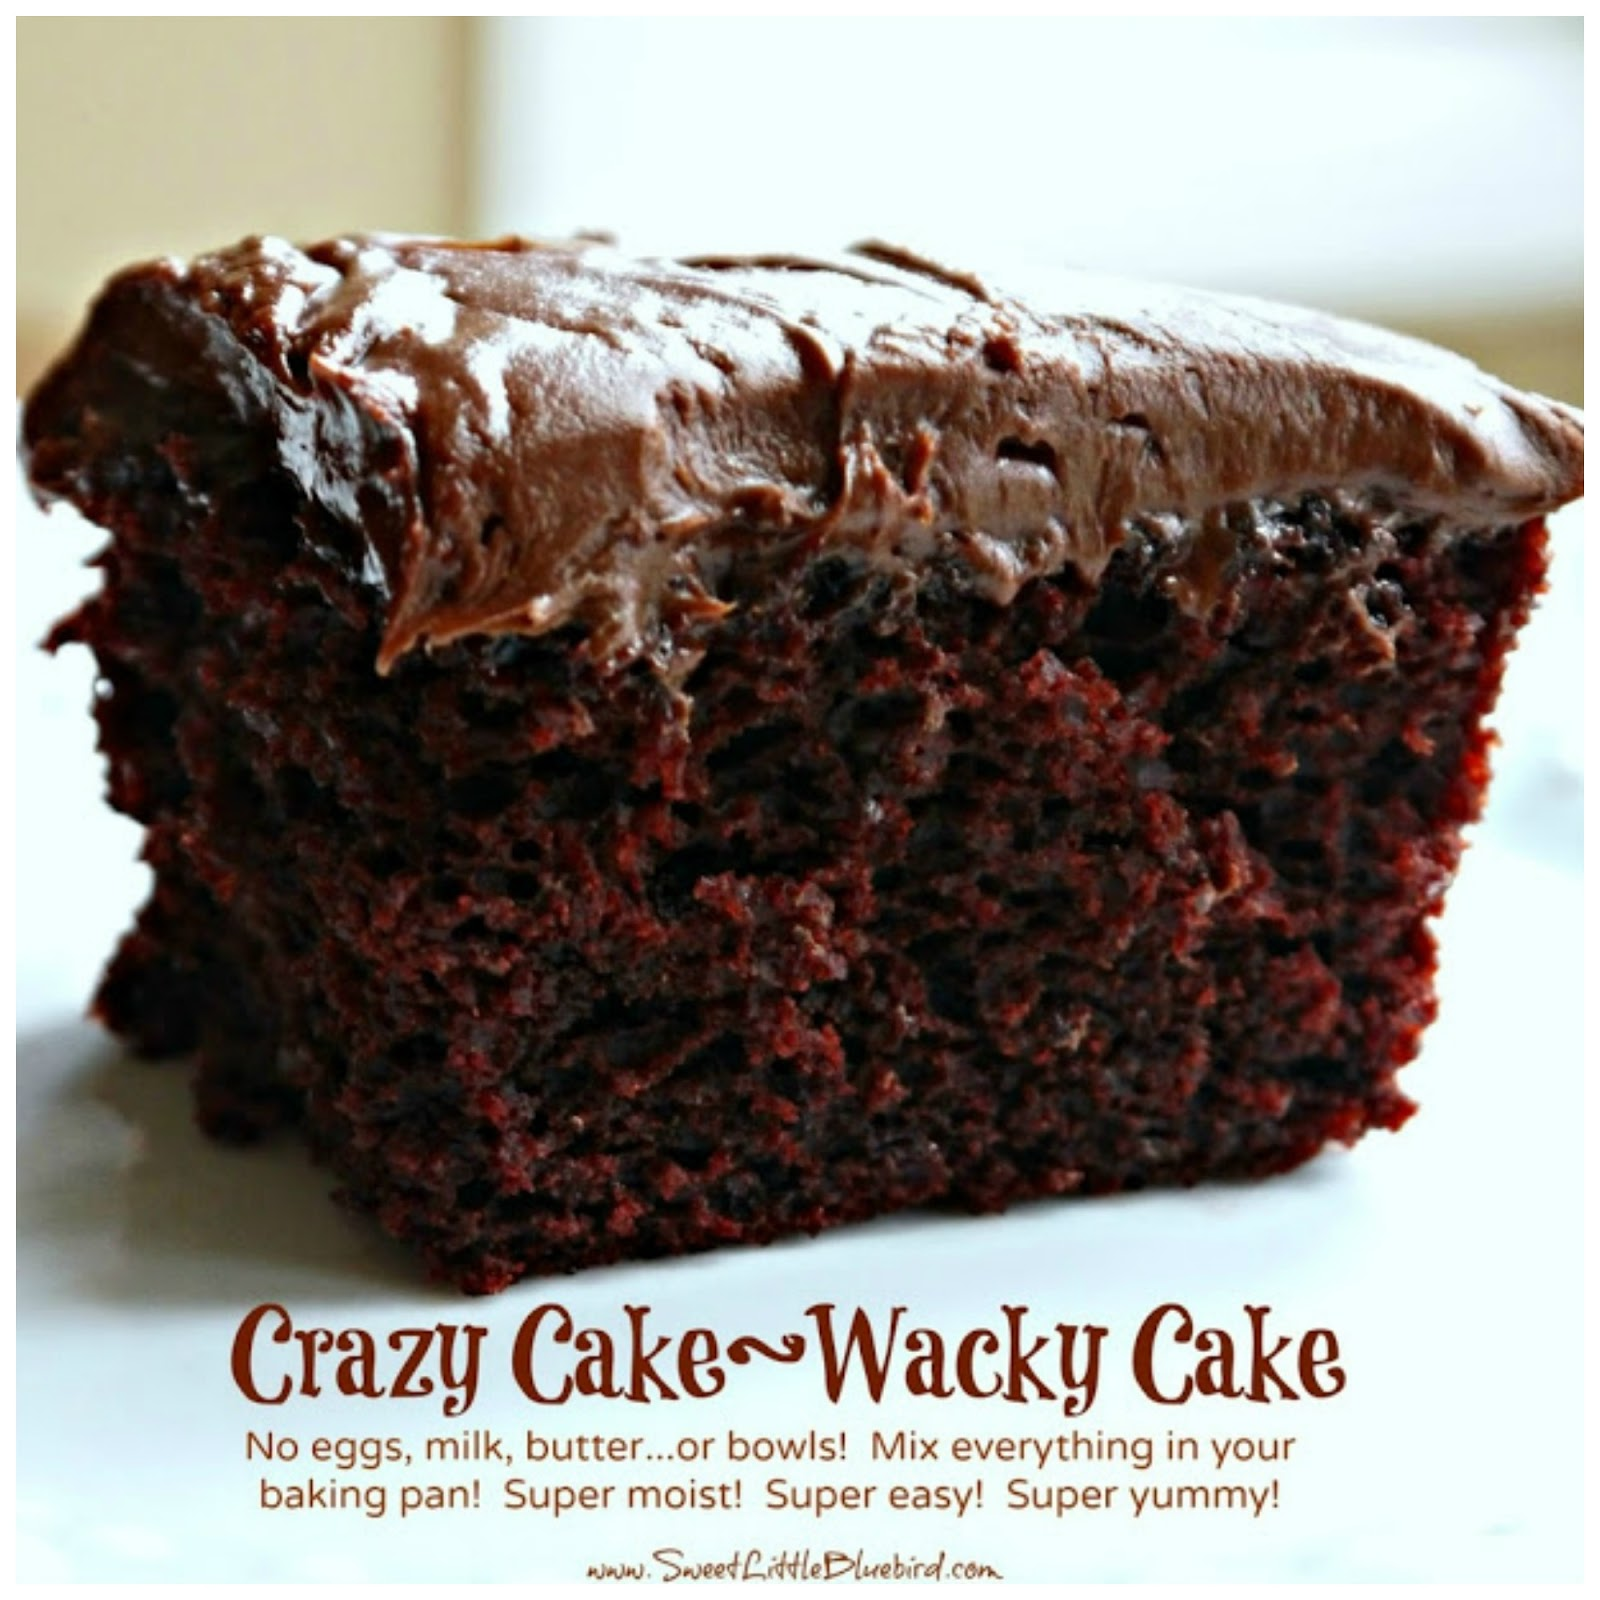 Chocolate Crazy Cake No Eggs Milk Butter or Bowls Sweet Little